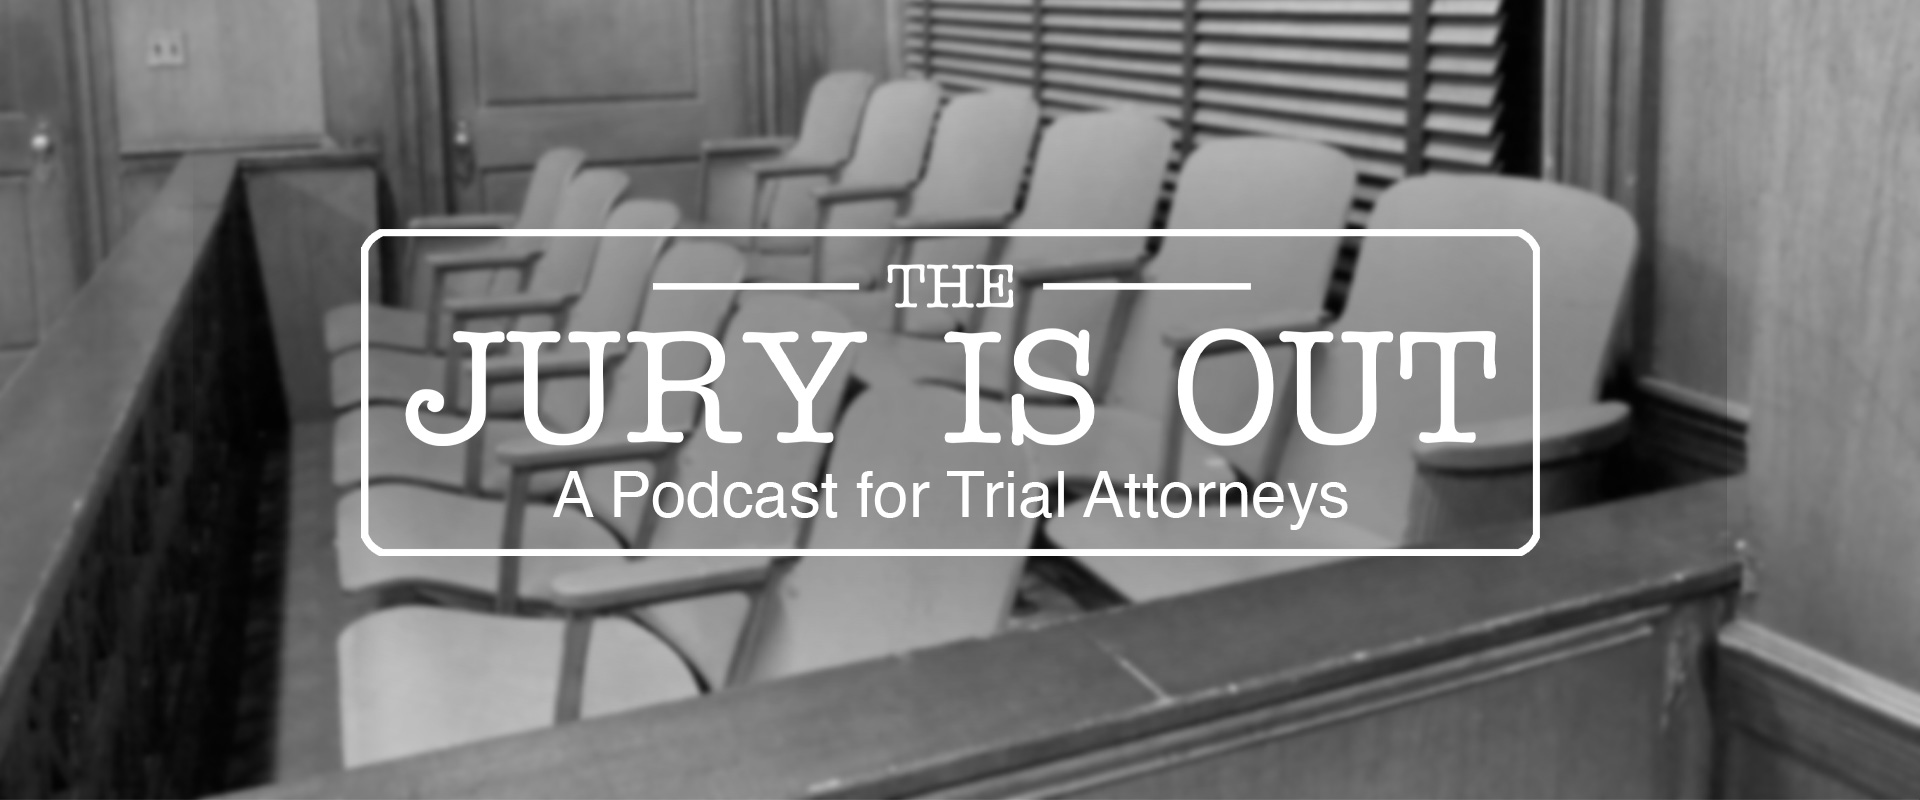 EP119 – Preparing an Expert Witness for Deposition with Erica Slater